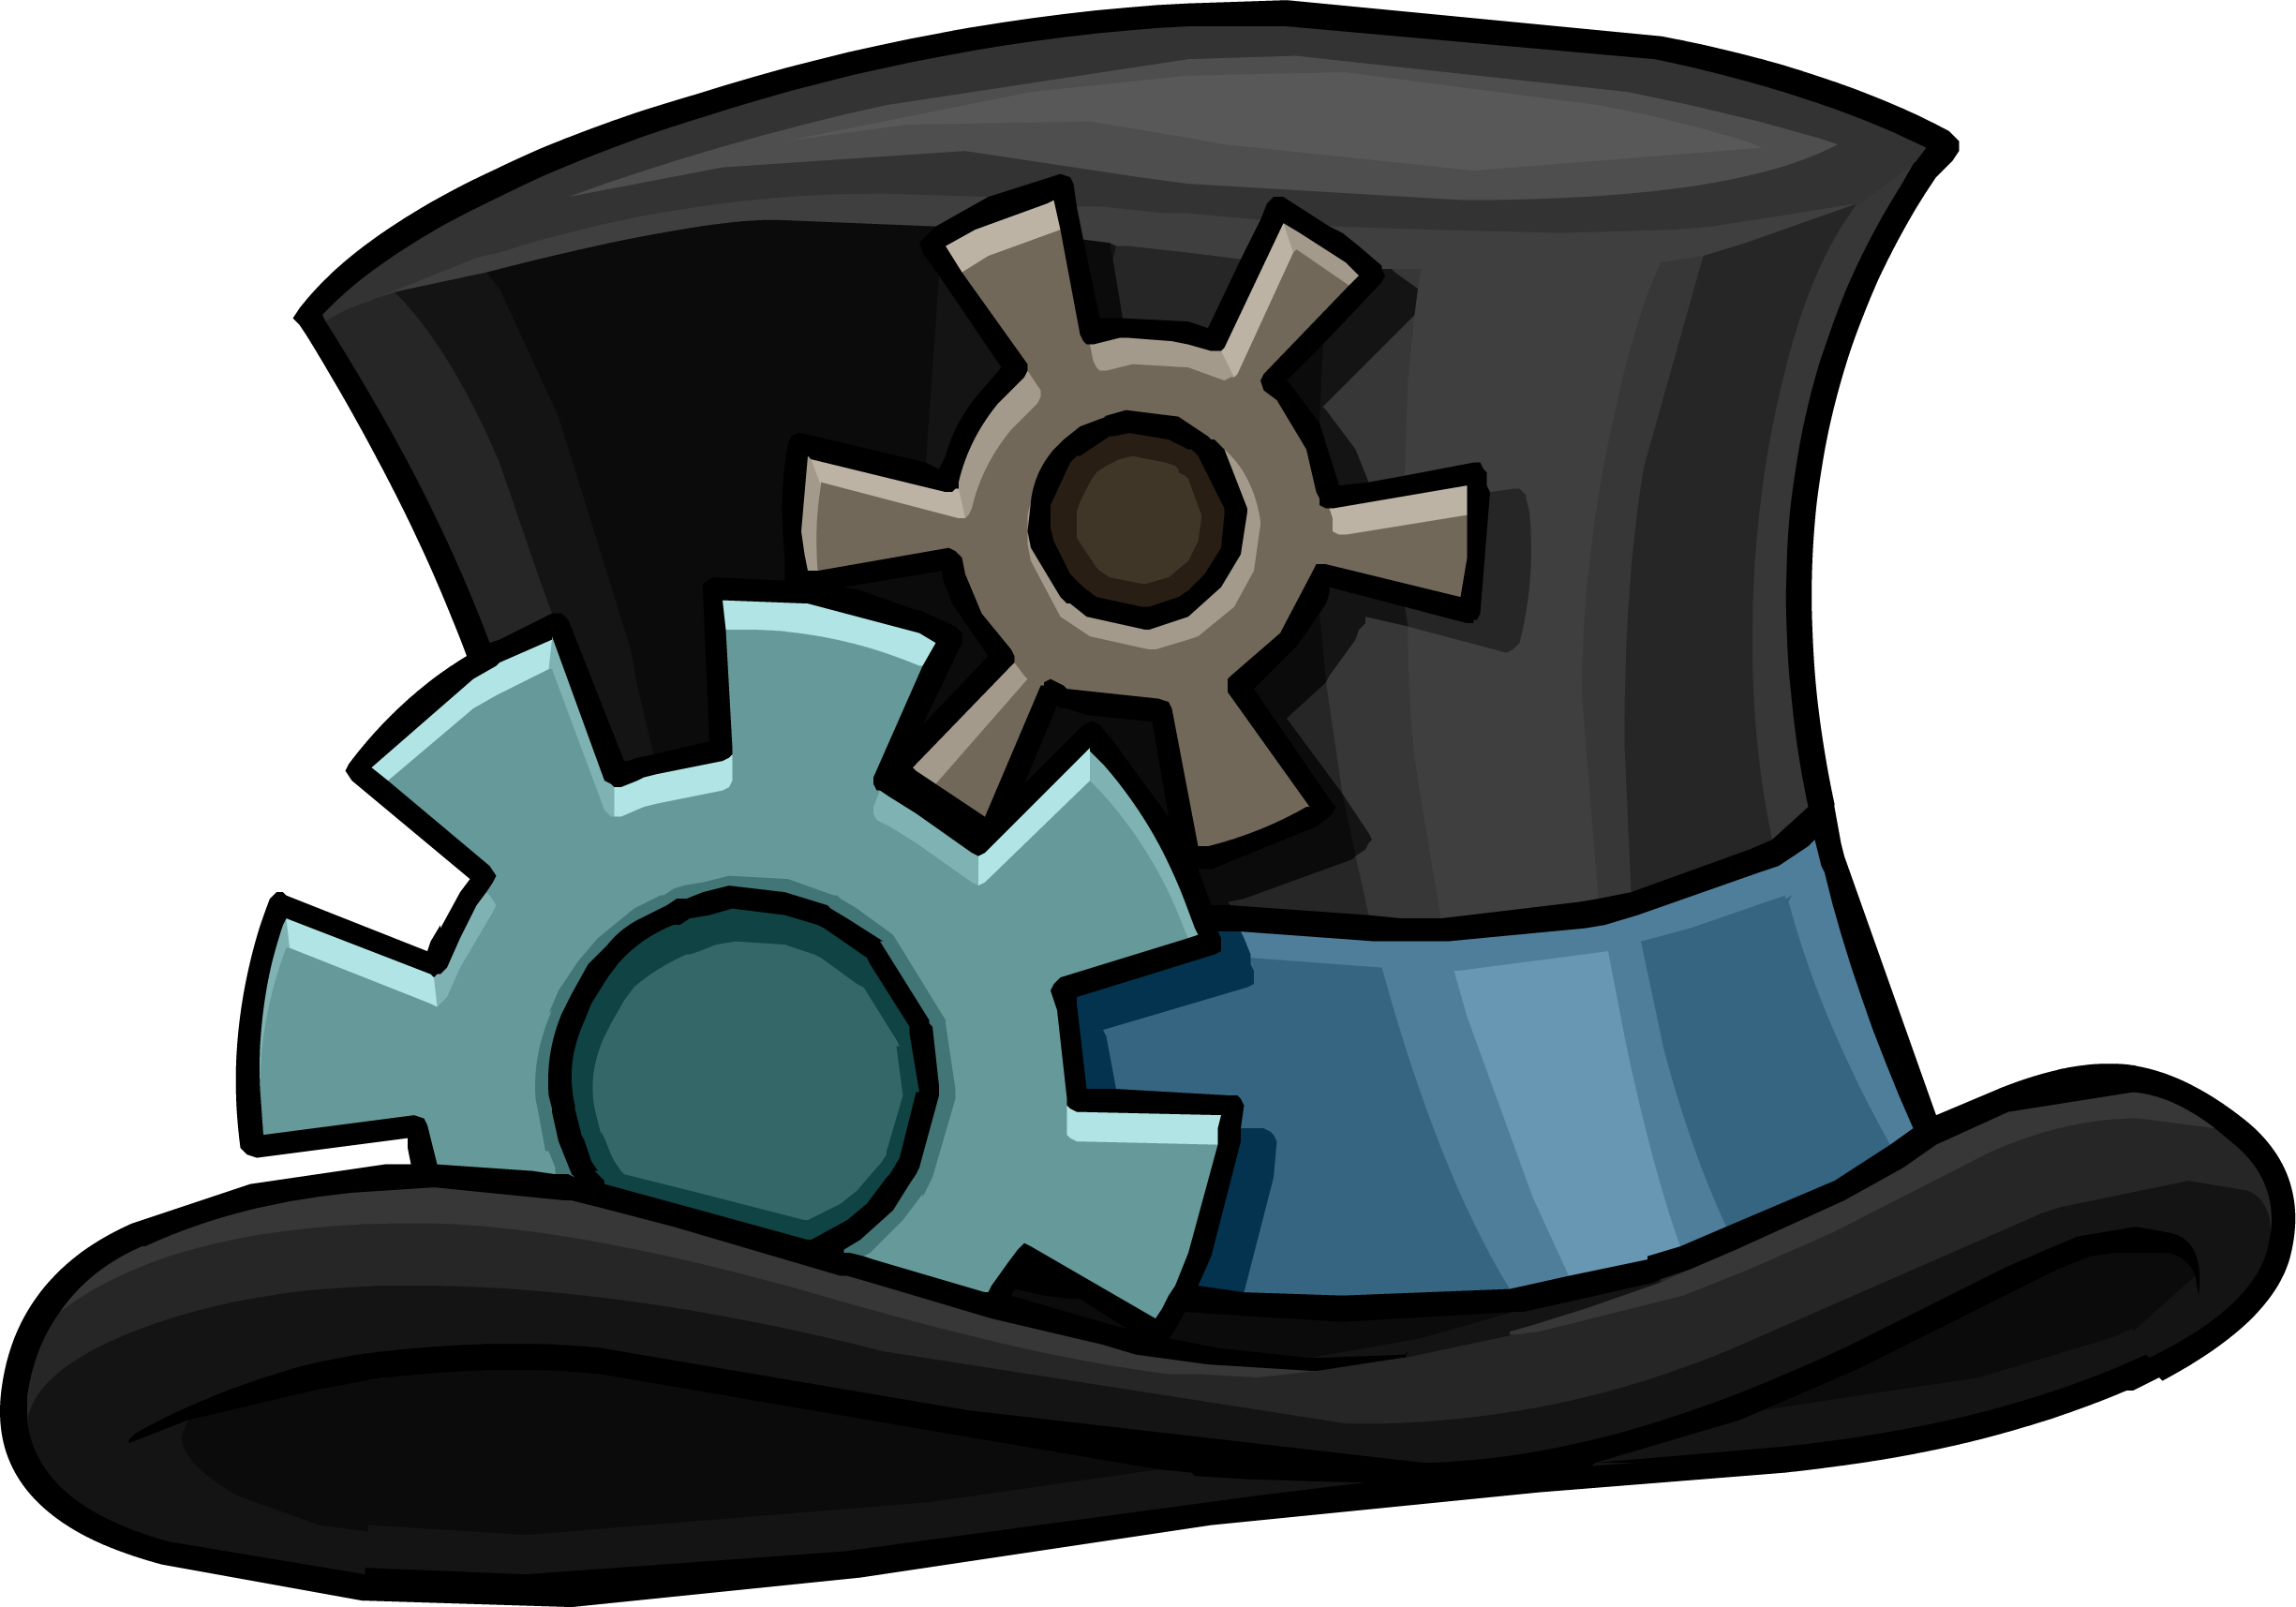 Hat clipart pharaoh. Image puffle gear png